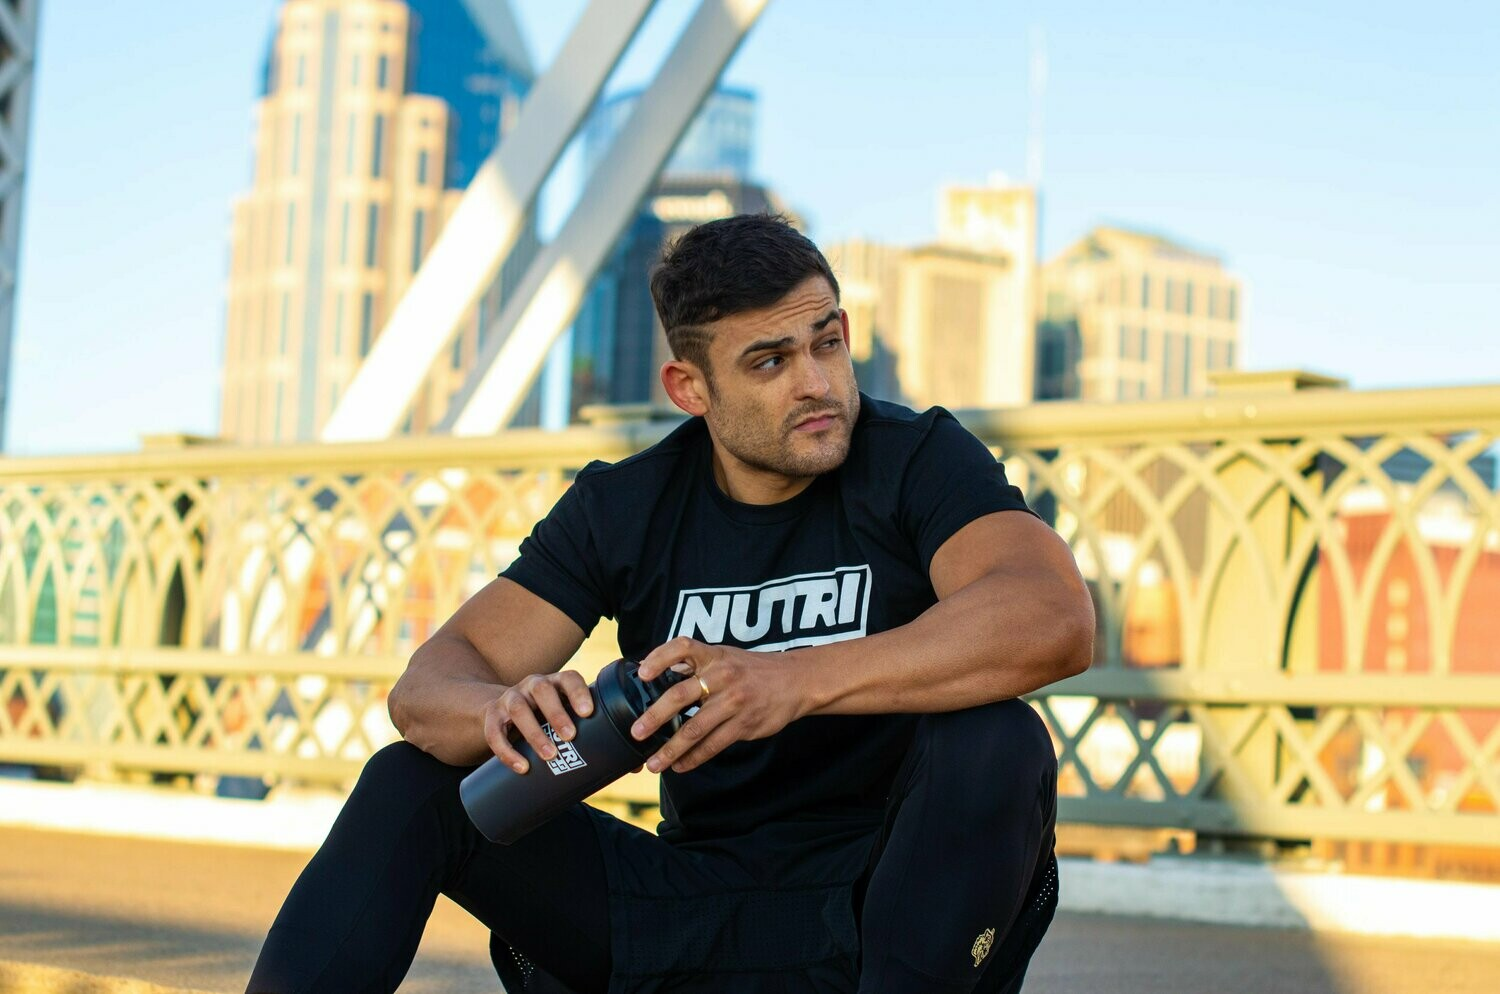 NutriFitt Performance Tees